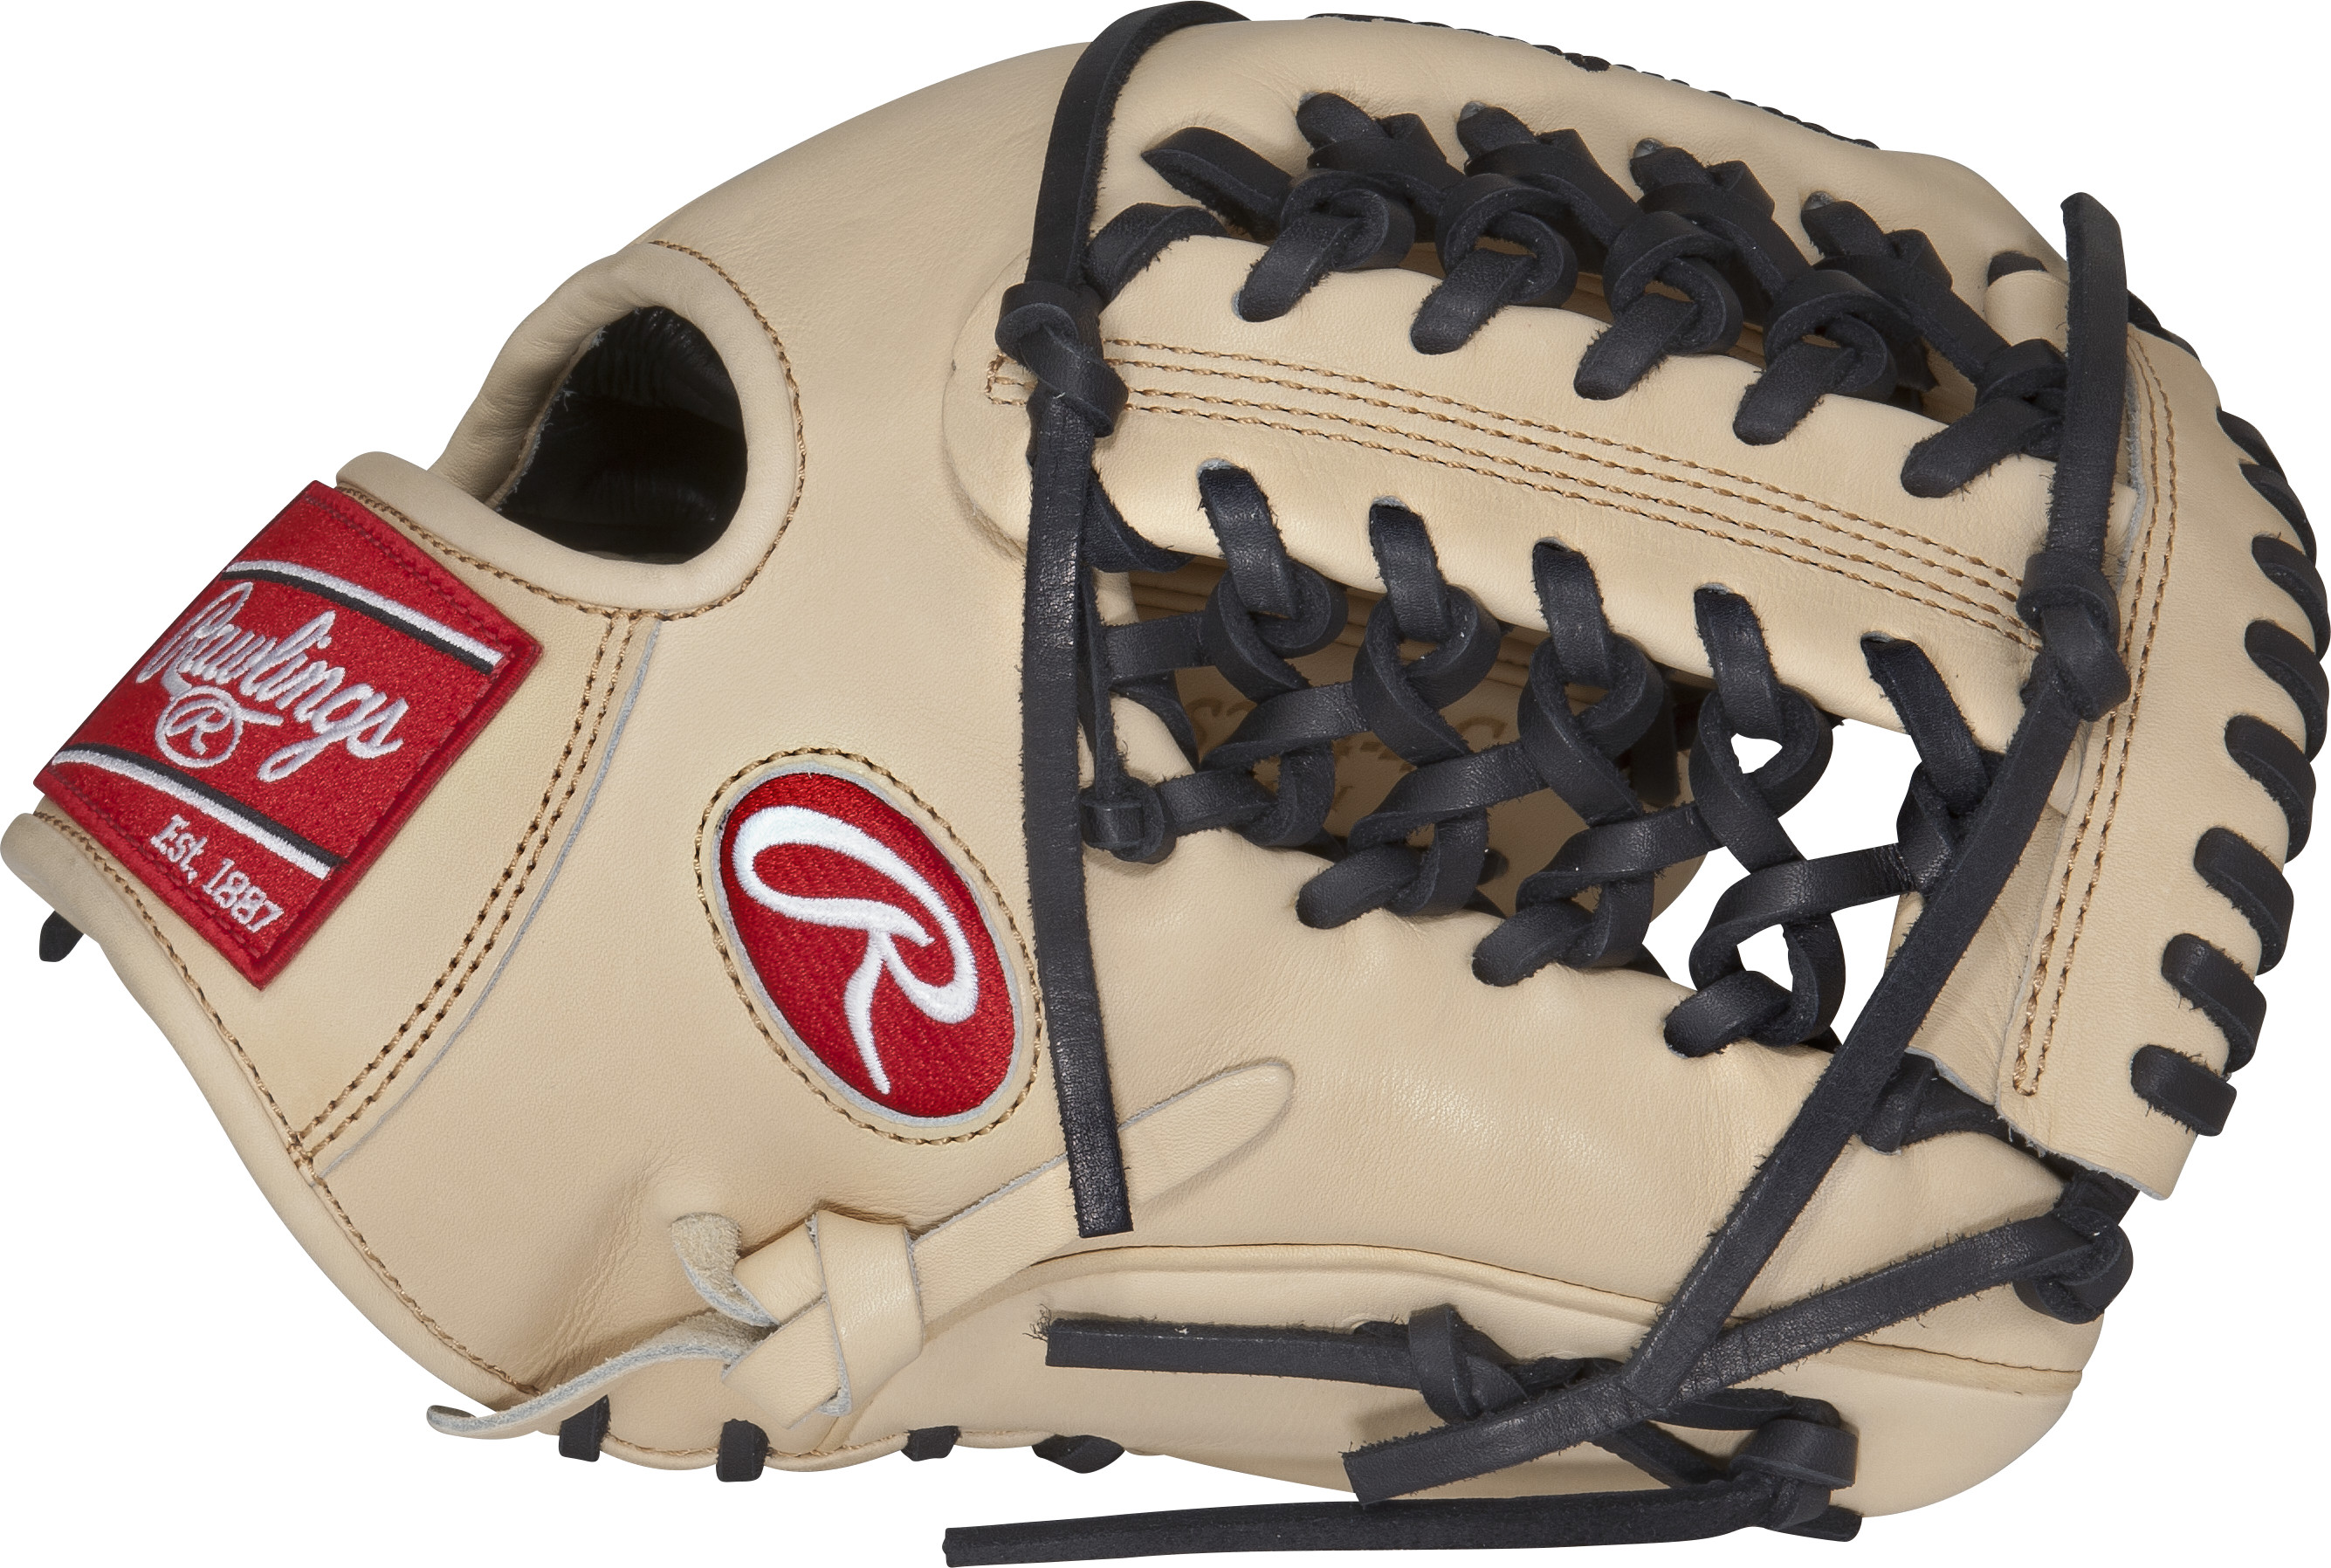 http://www.bestbatdeals.com/images/gloves/rawlings/PROS204-4C_thumb.jpg